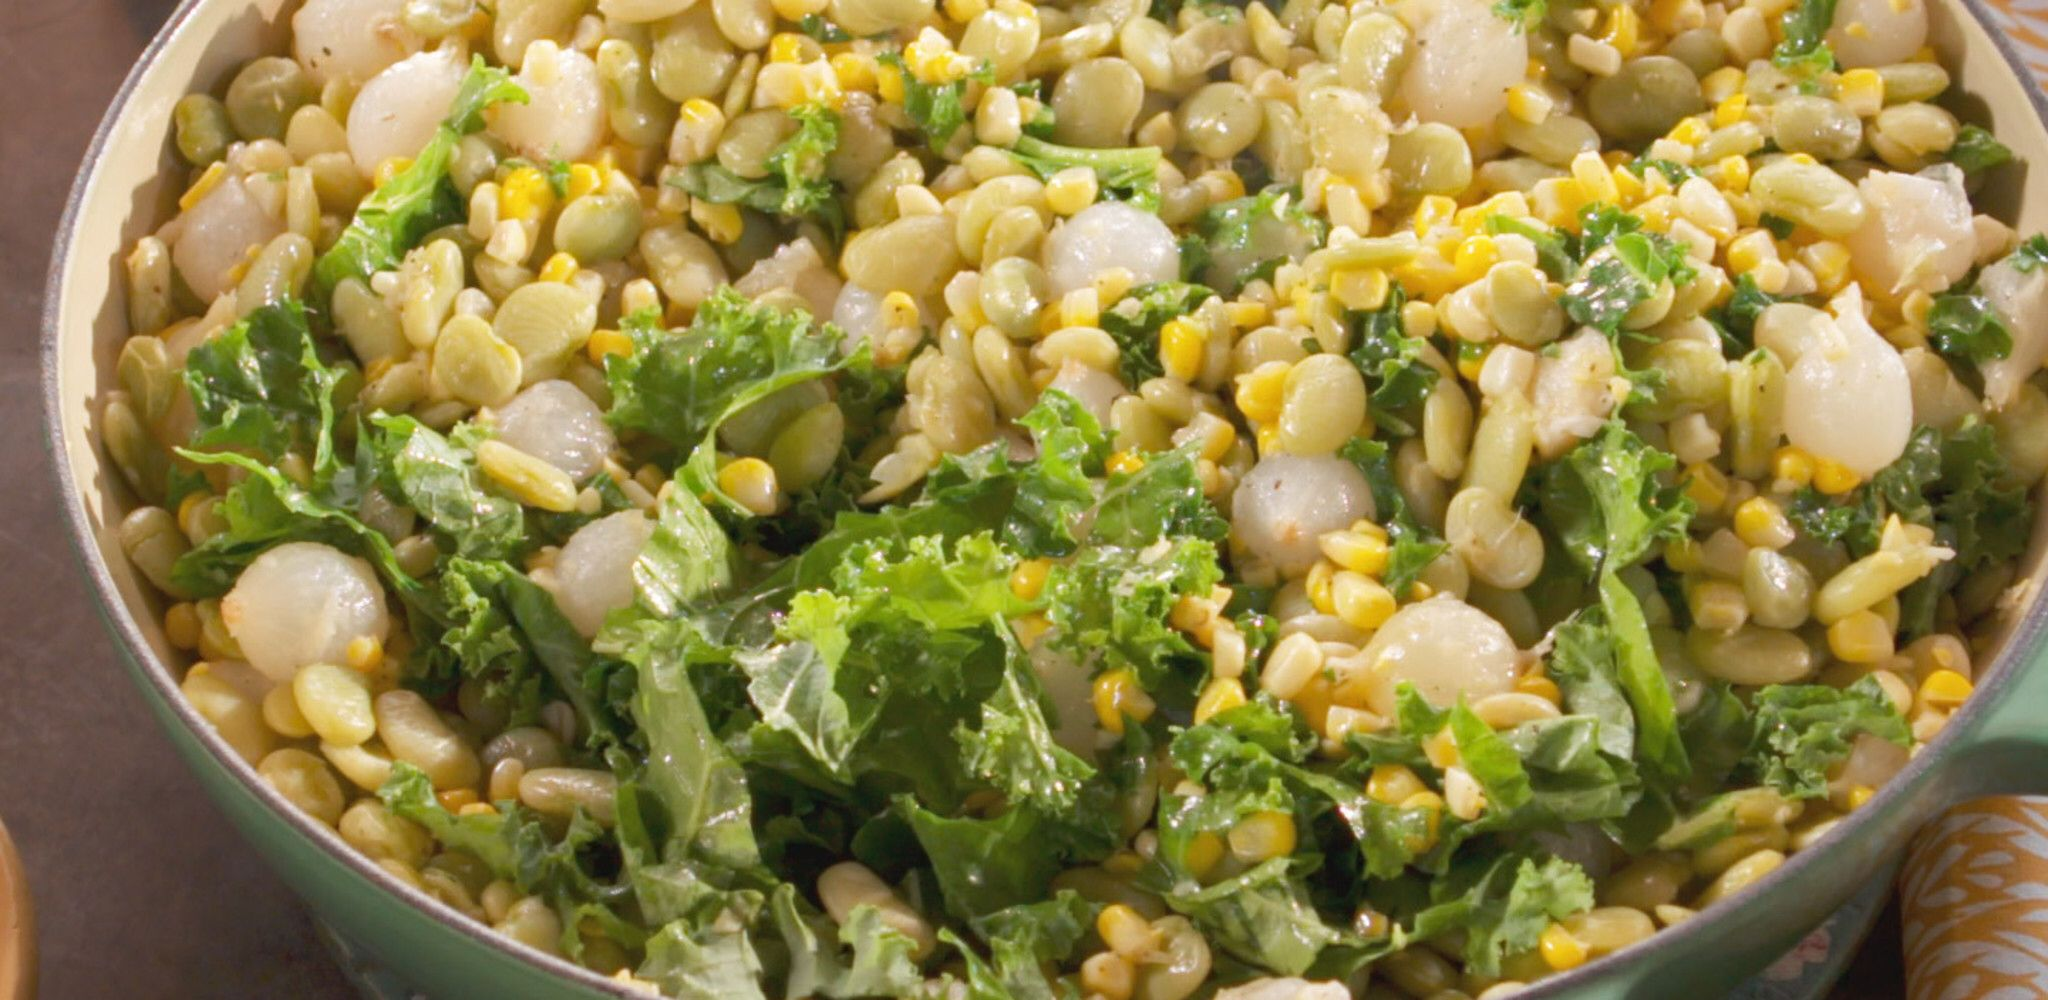 Thanksgiving Succotash Recipe (With images) Food